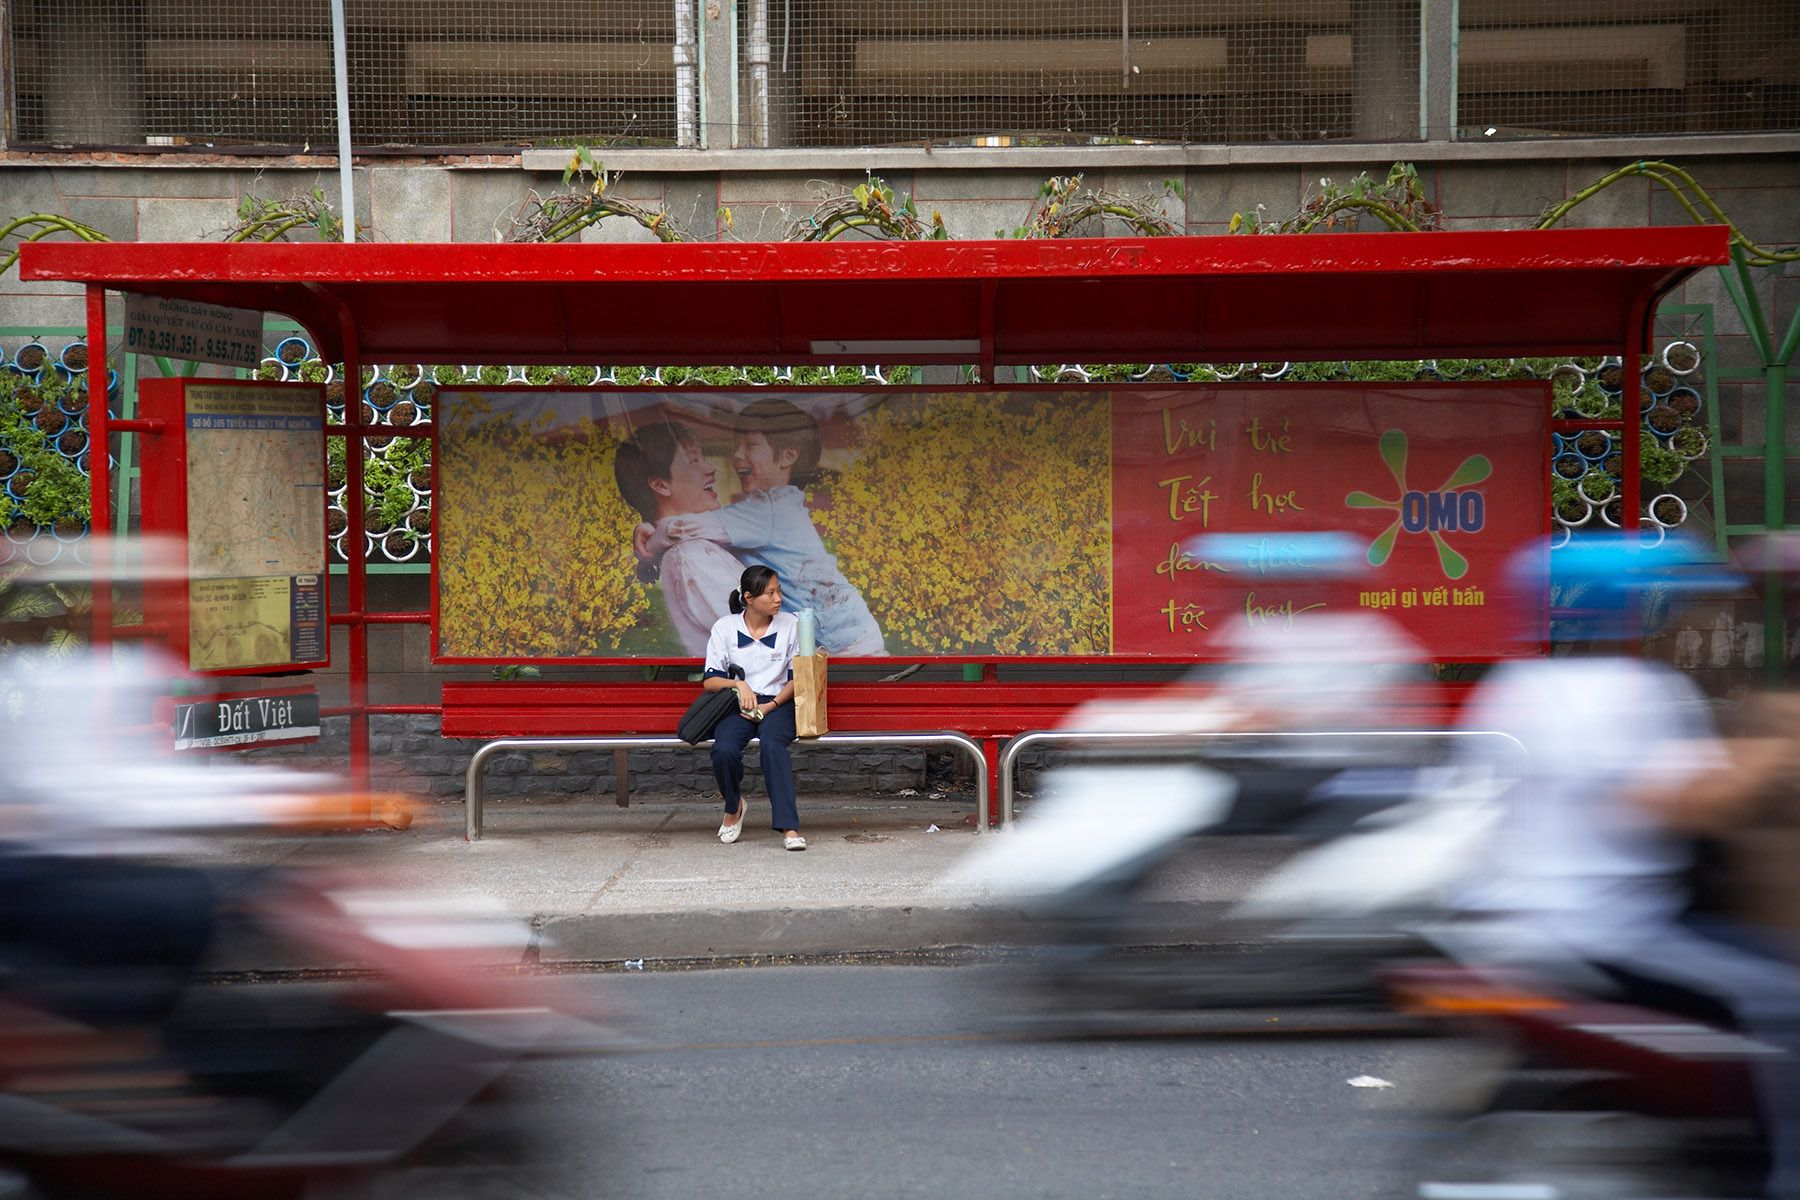 Waiting for the bus in Ho Chi Minh City